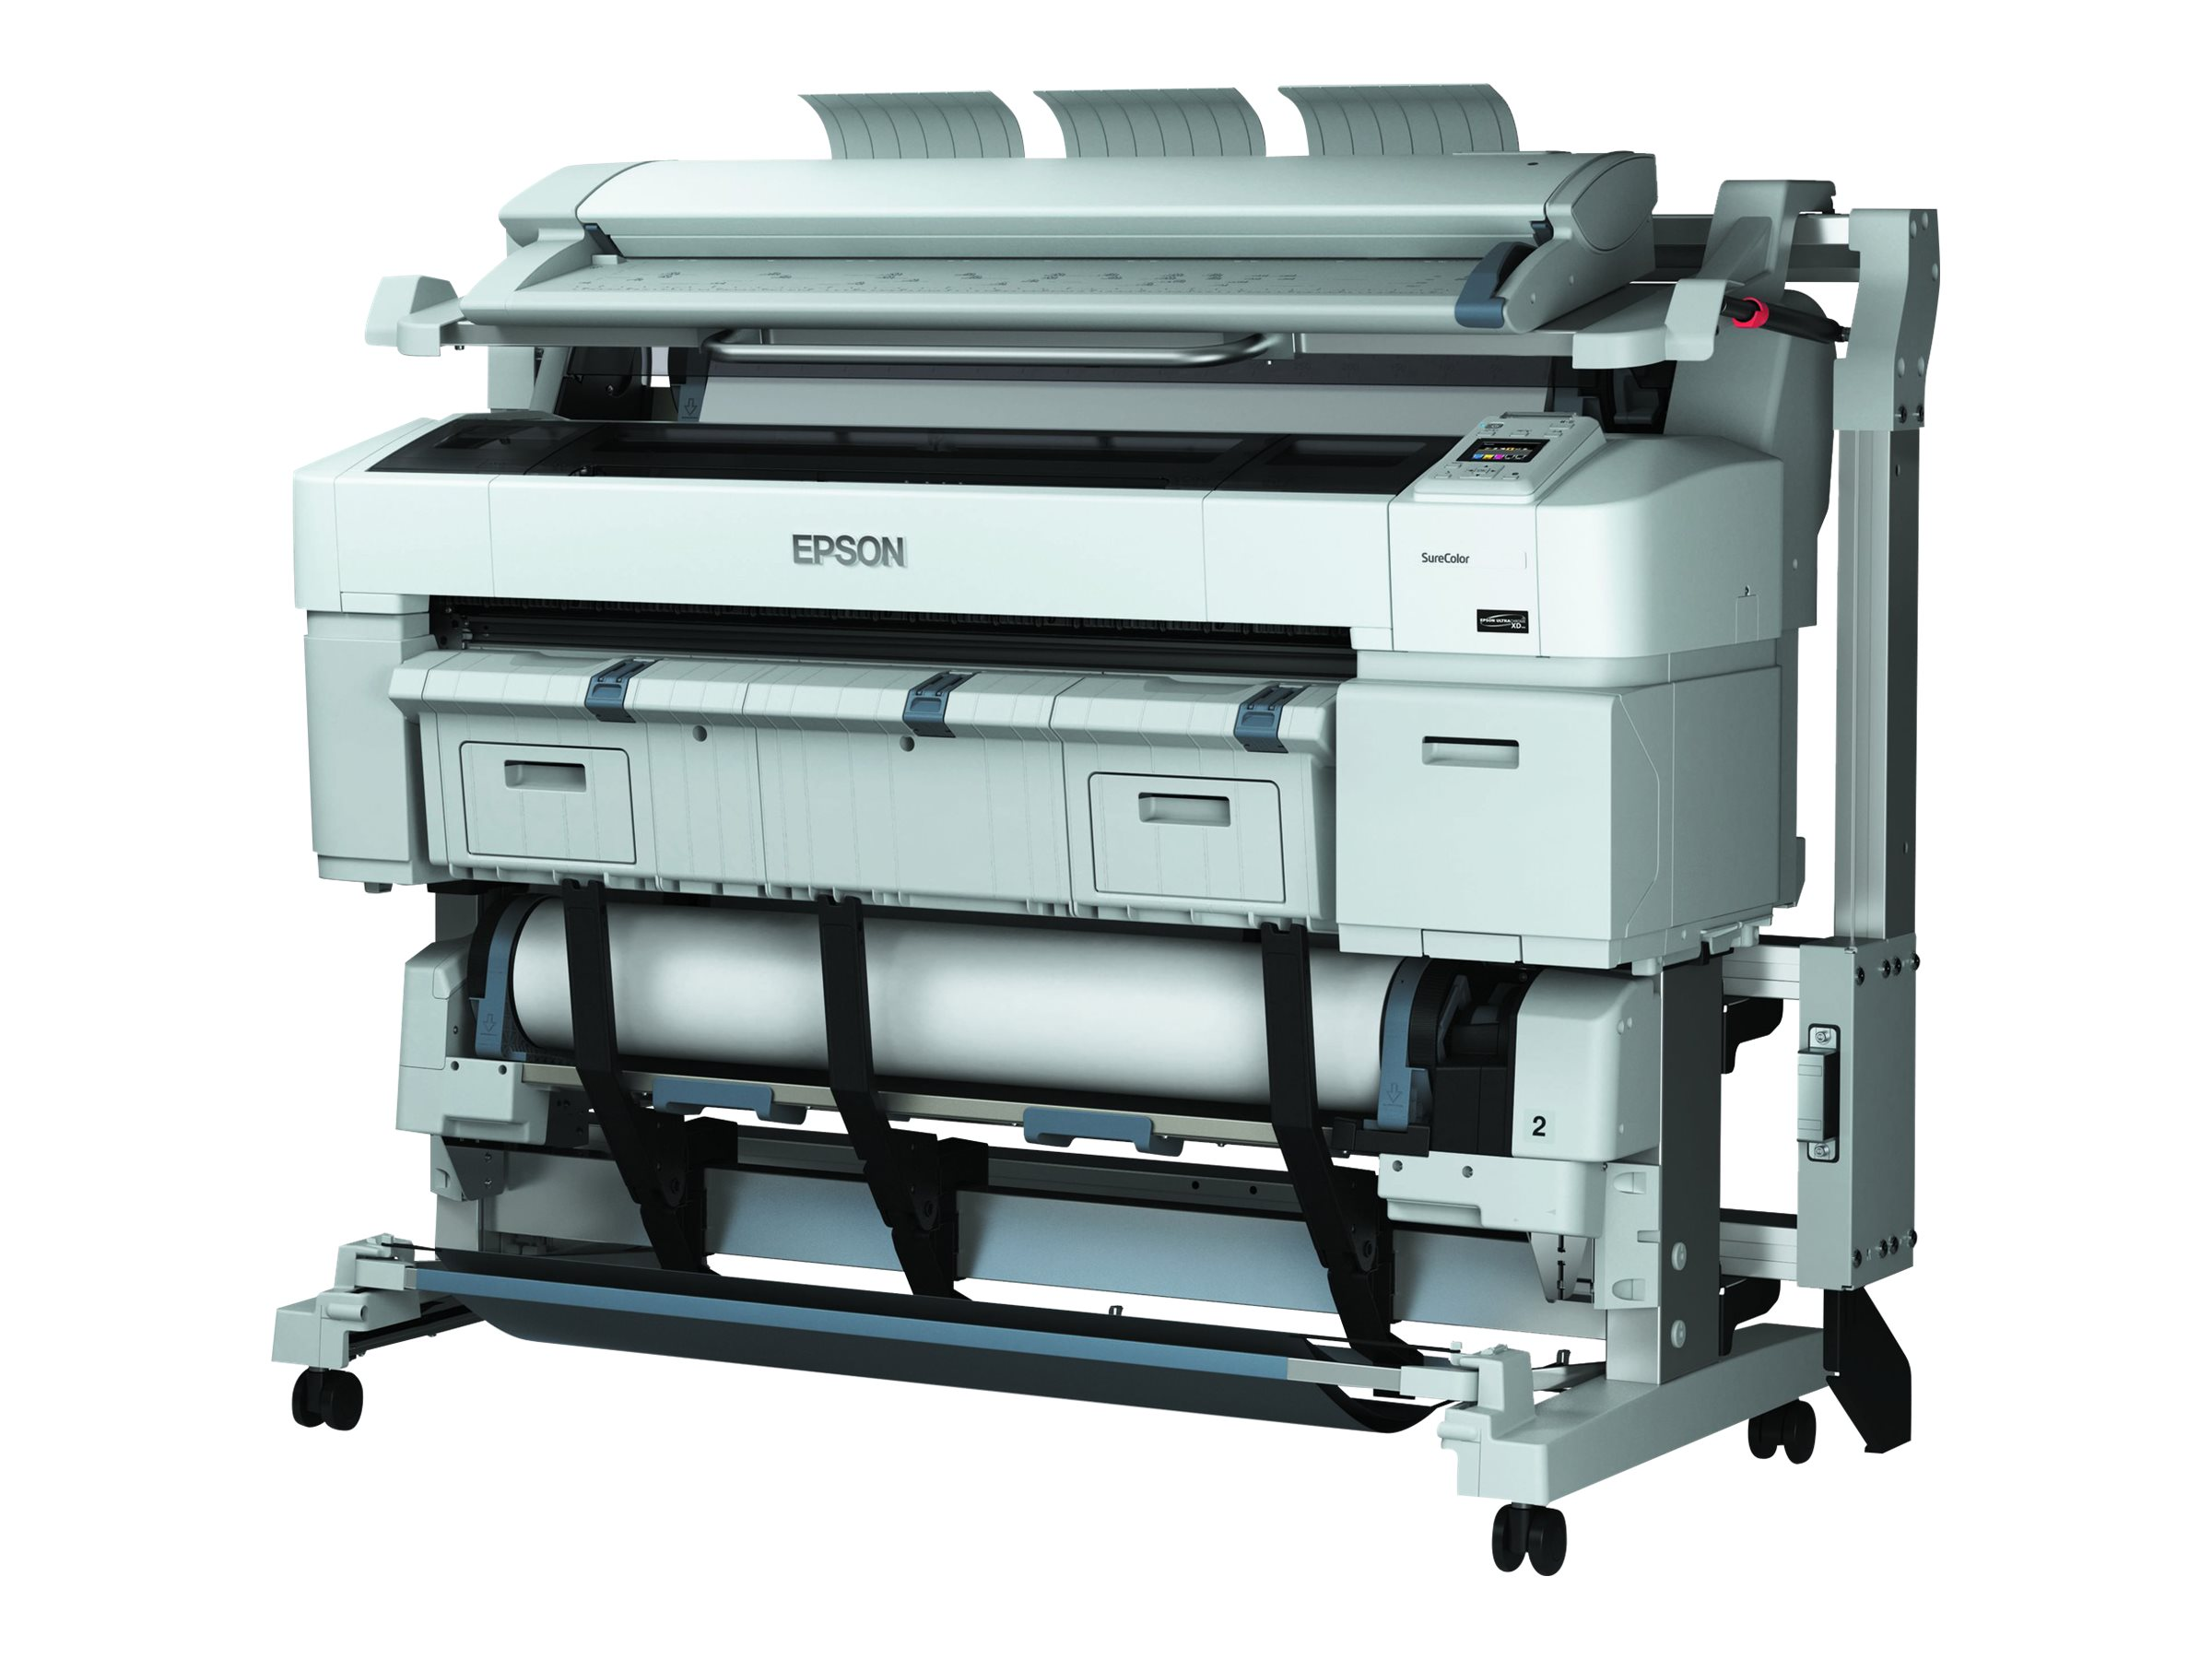 Epson SureColor T7270D Dual Roll Printer